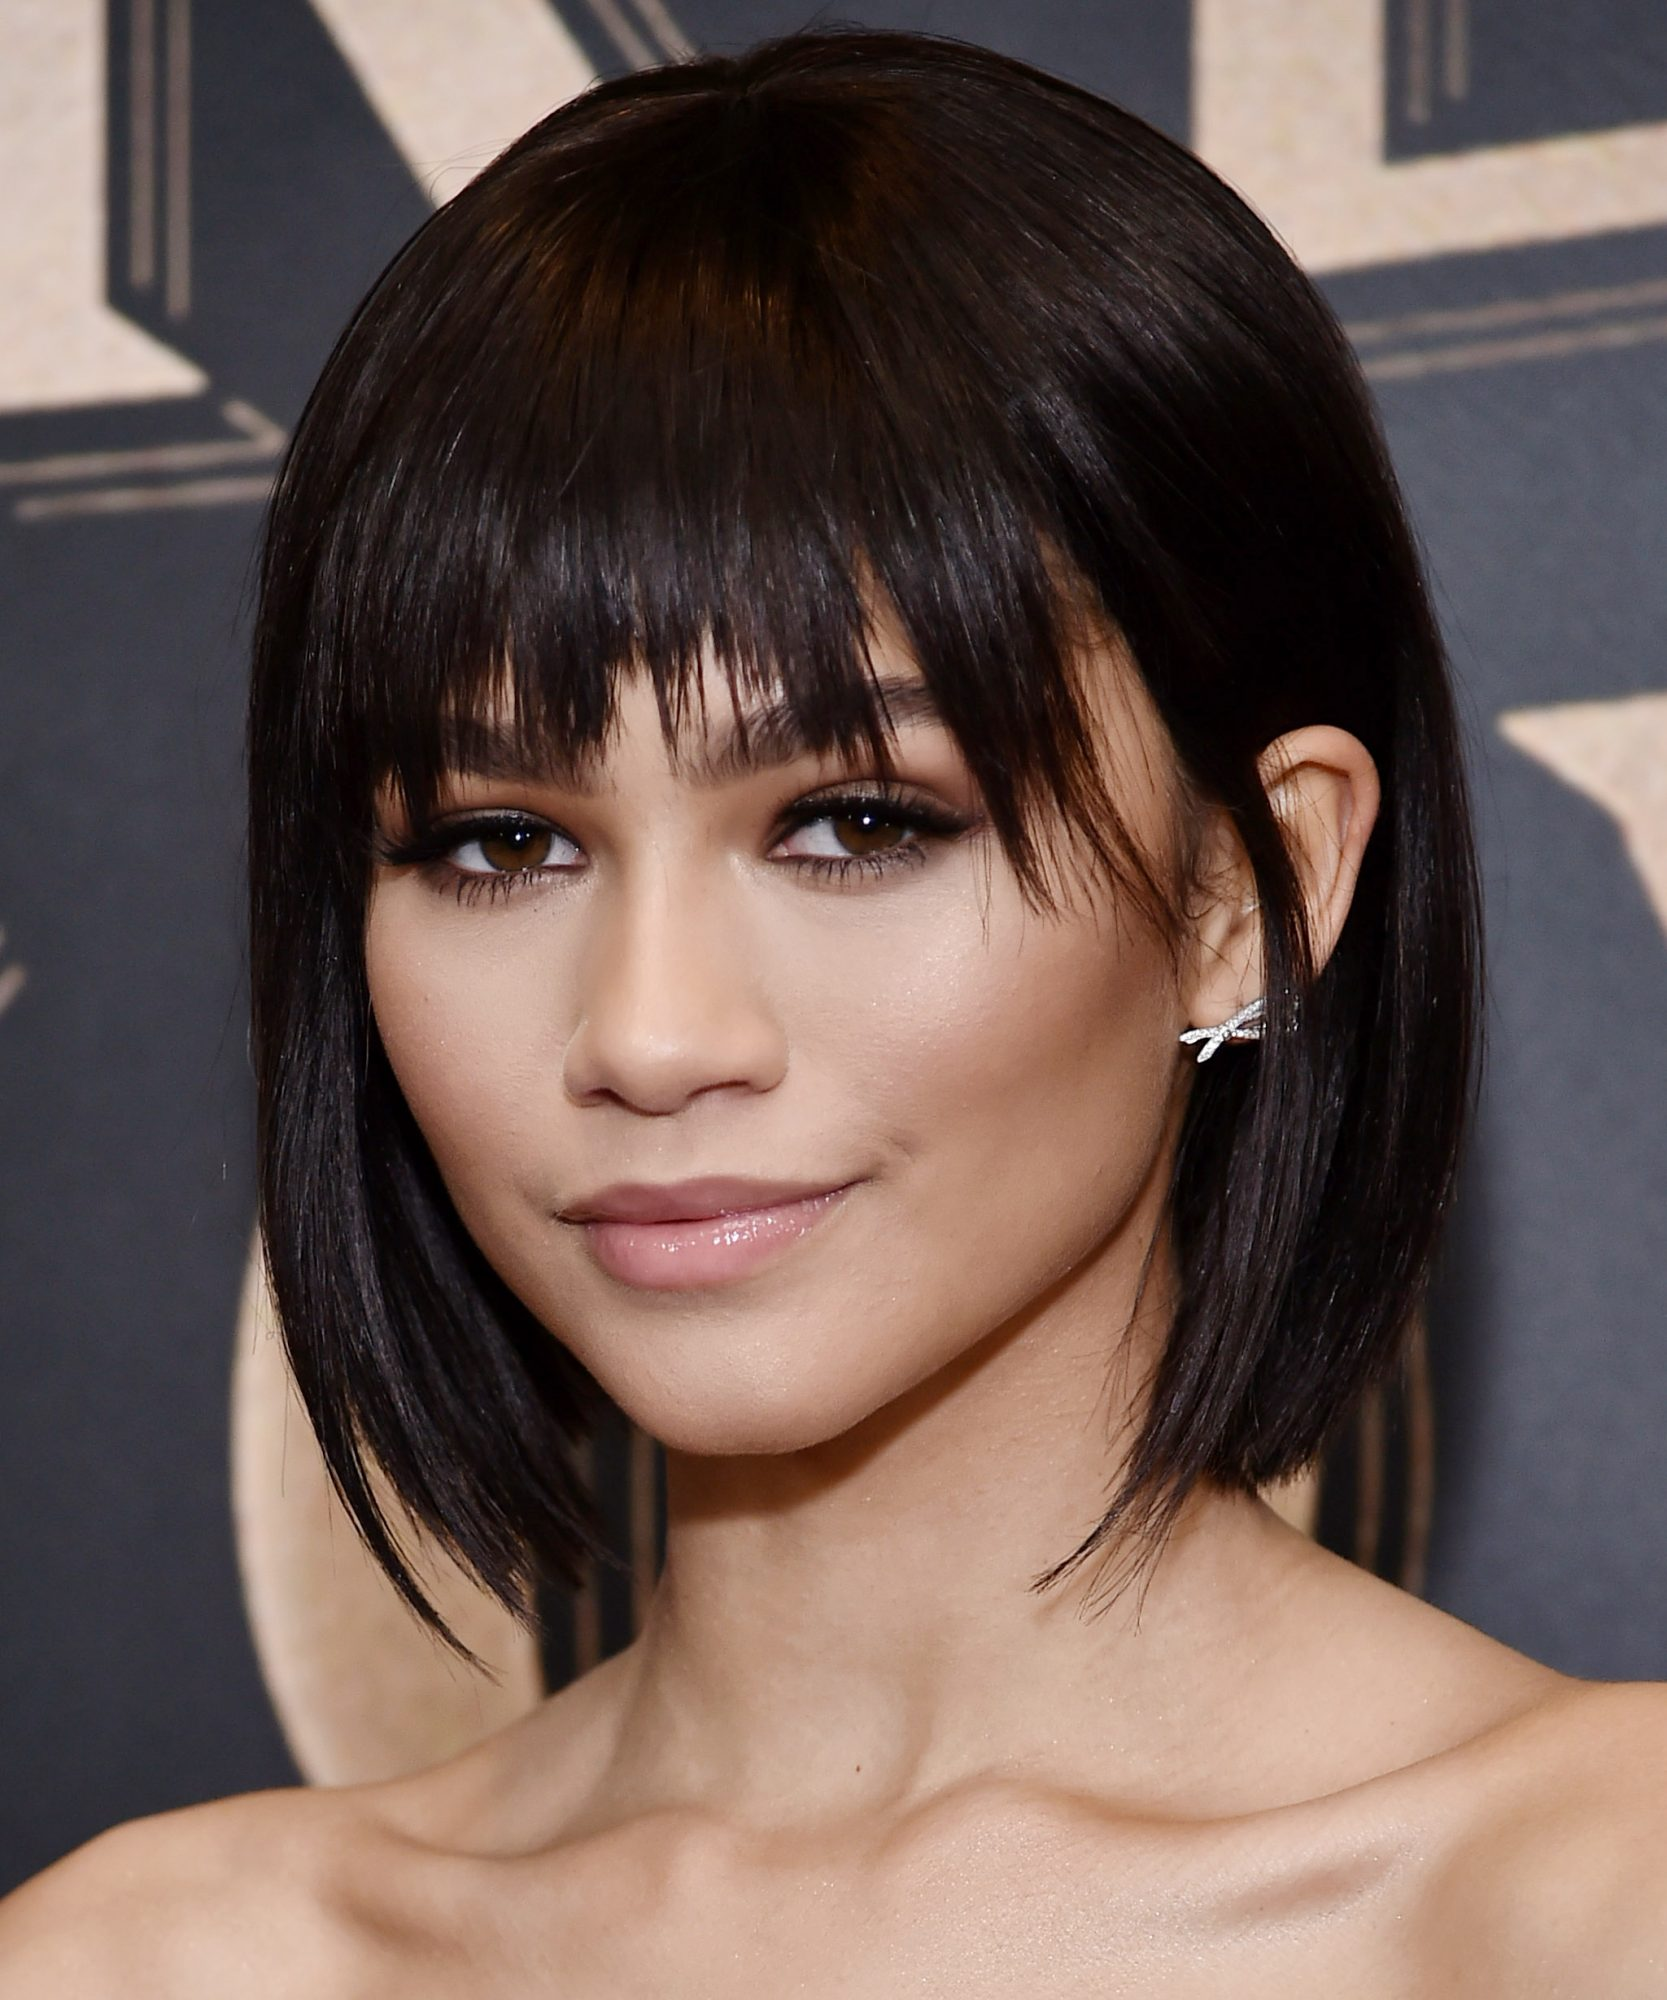 Remarkable, Short hair hairstyles with bangs like